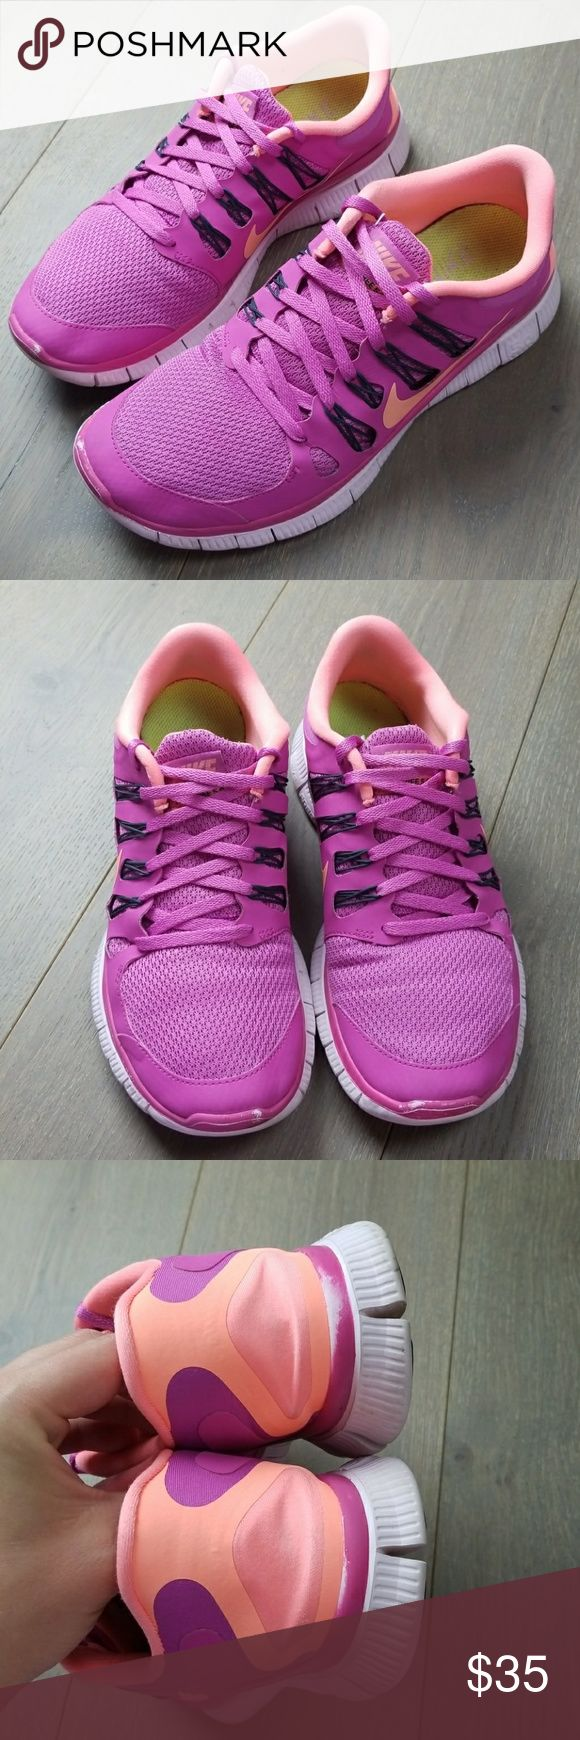 Nike free 5.0 running shoes Women's Nike running shoes are preowned with signs of use but still many miles left in them  A great color and design Nike Shoes